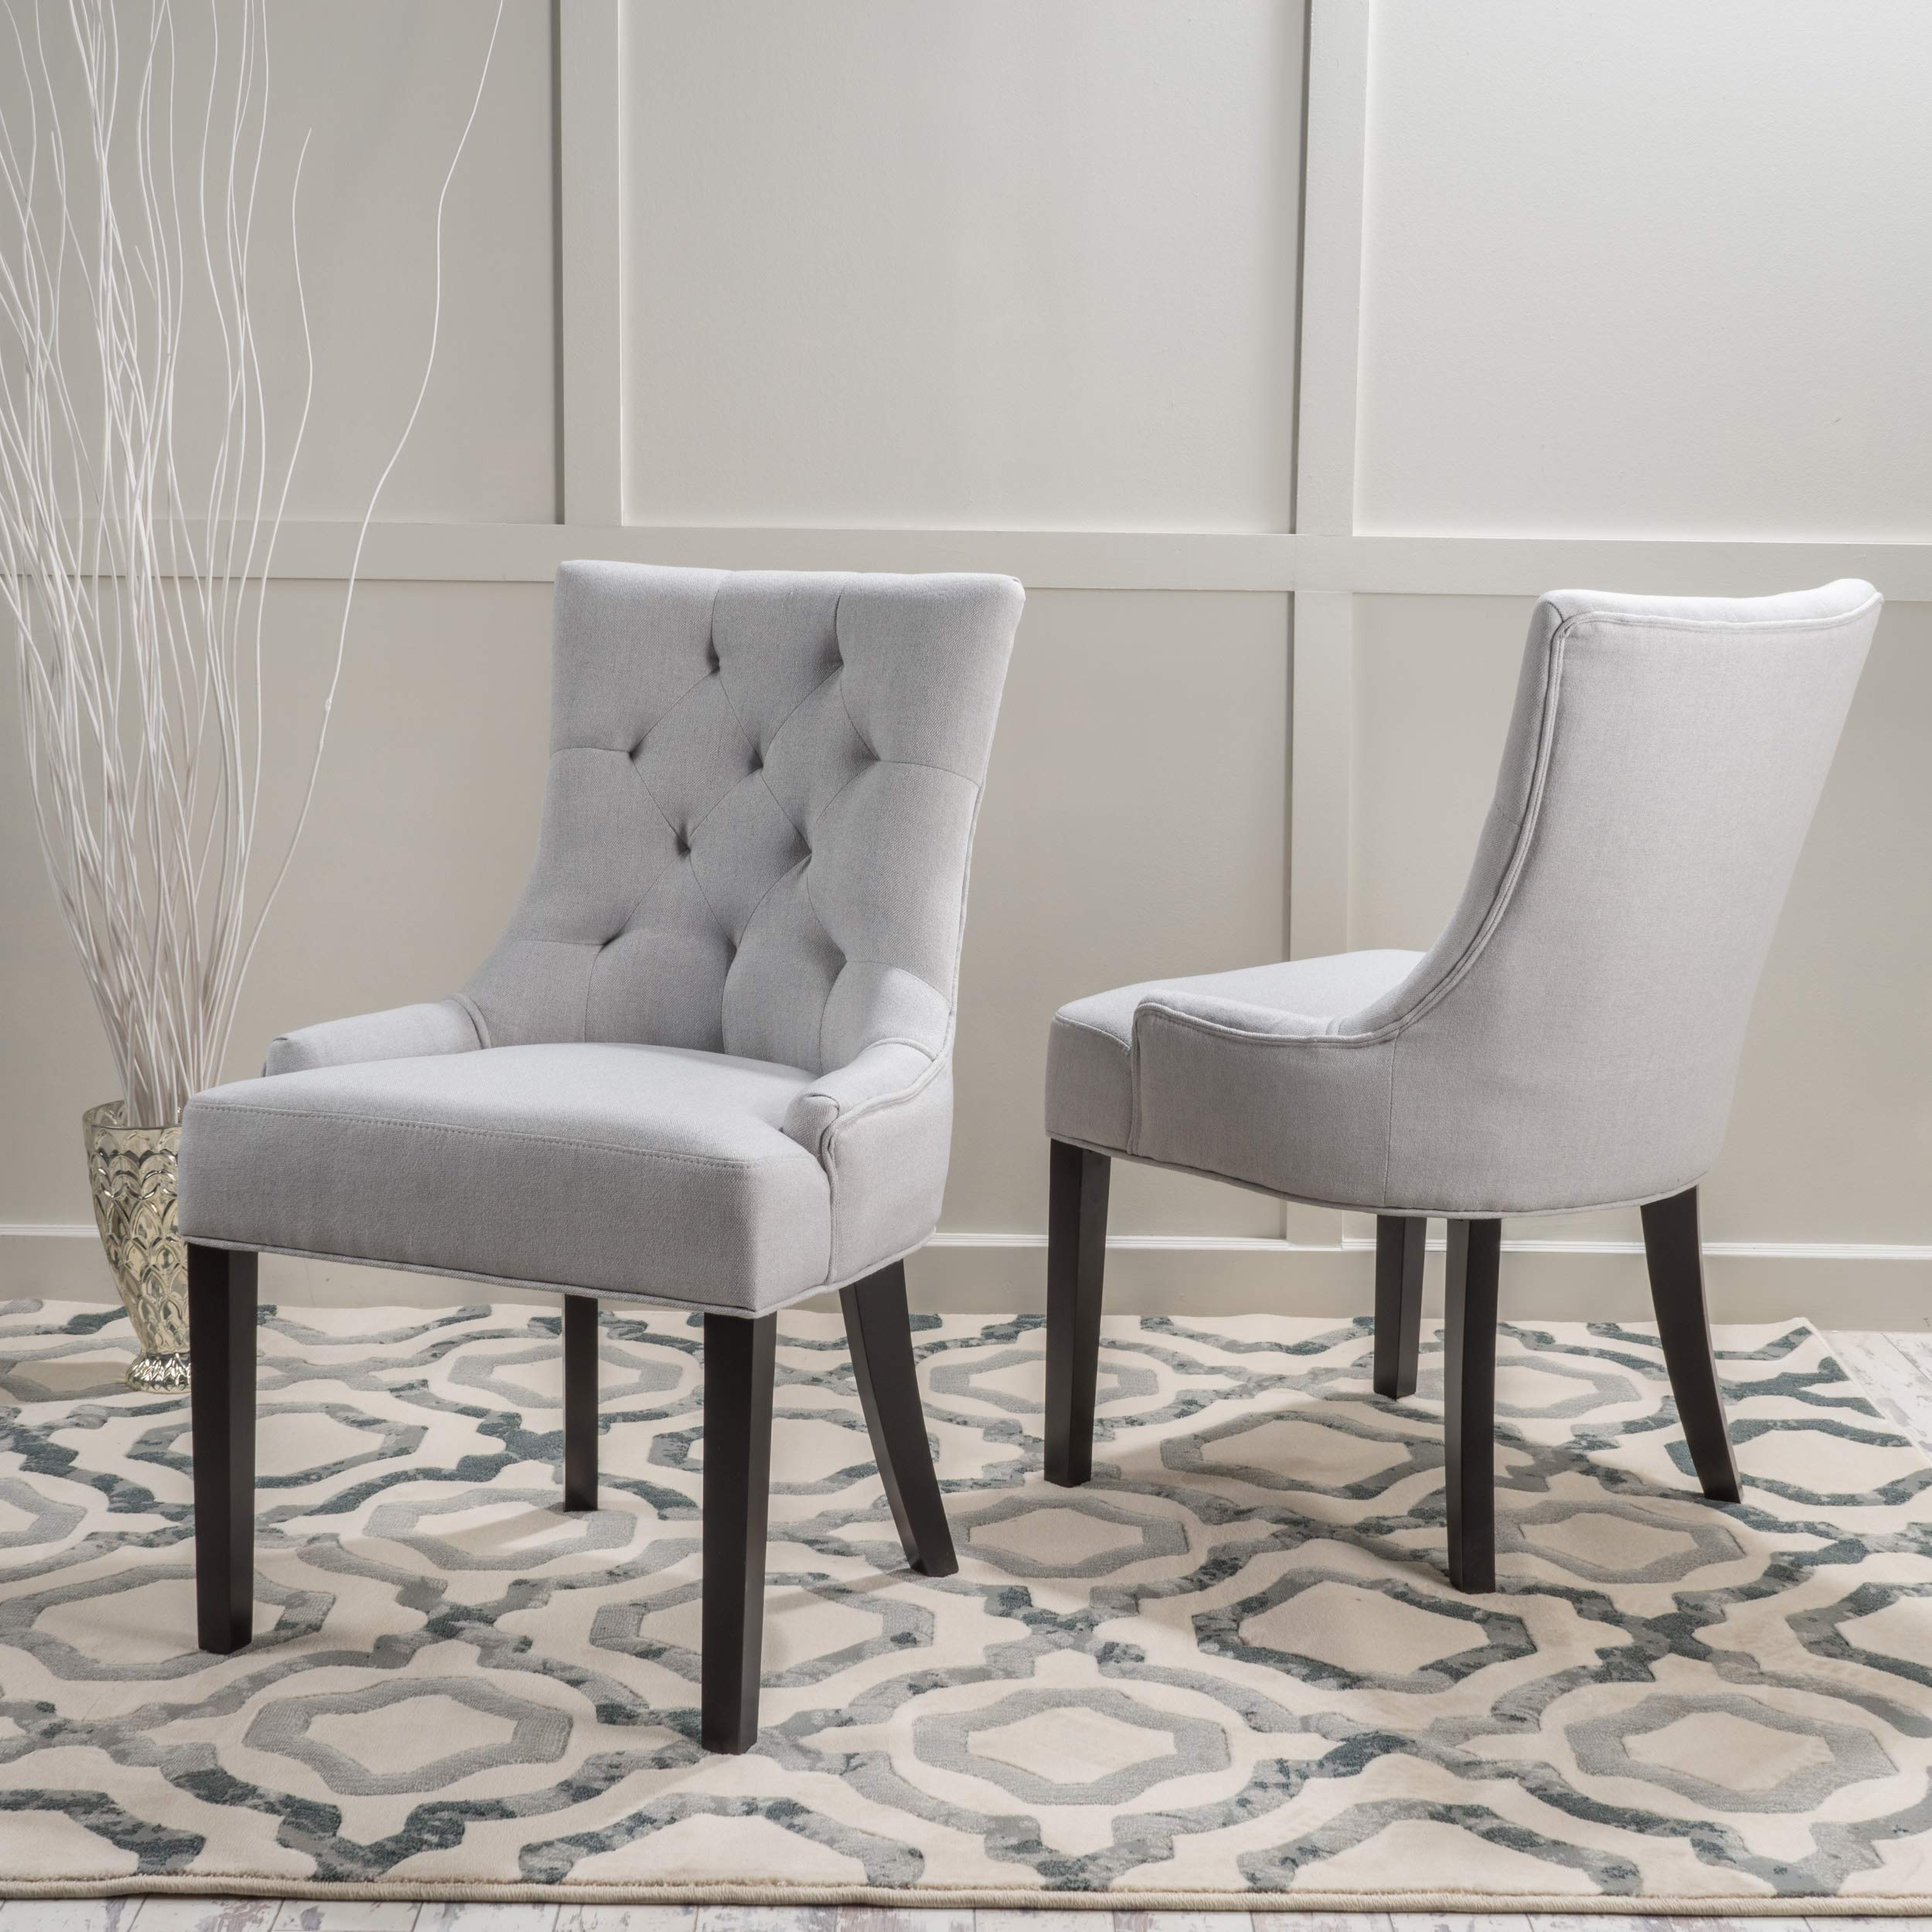 Christopher Knight Home 299538 Hayden Fabric Dining Chairs (Set of 2), Light Gray by Christopher Knight Home (Image #2)